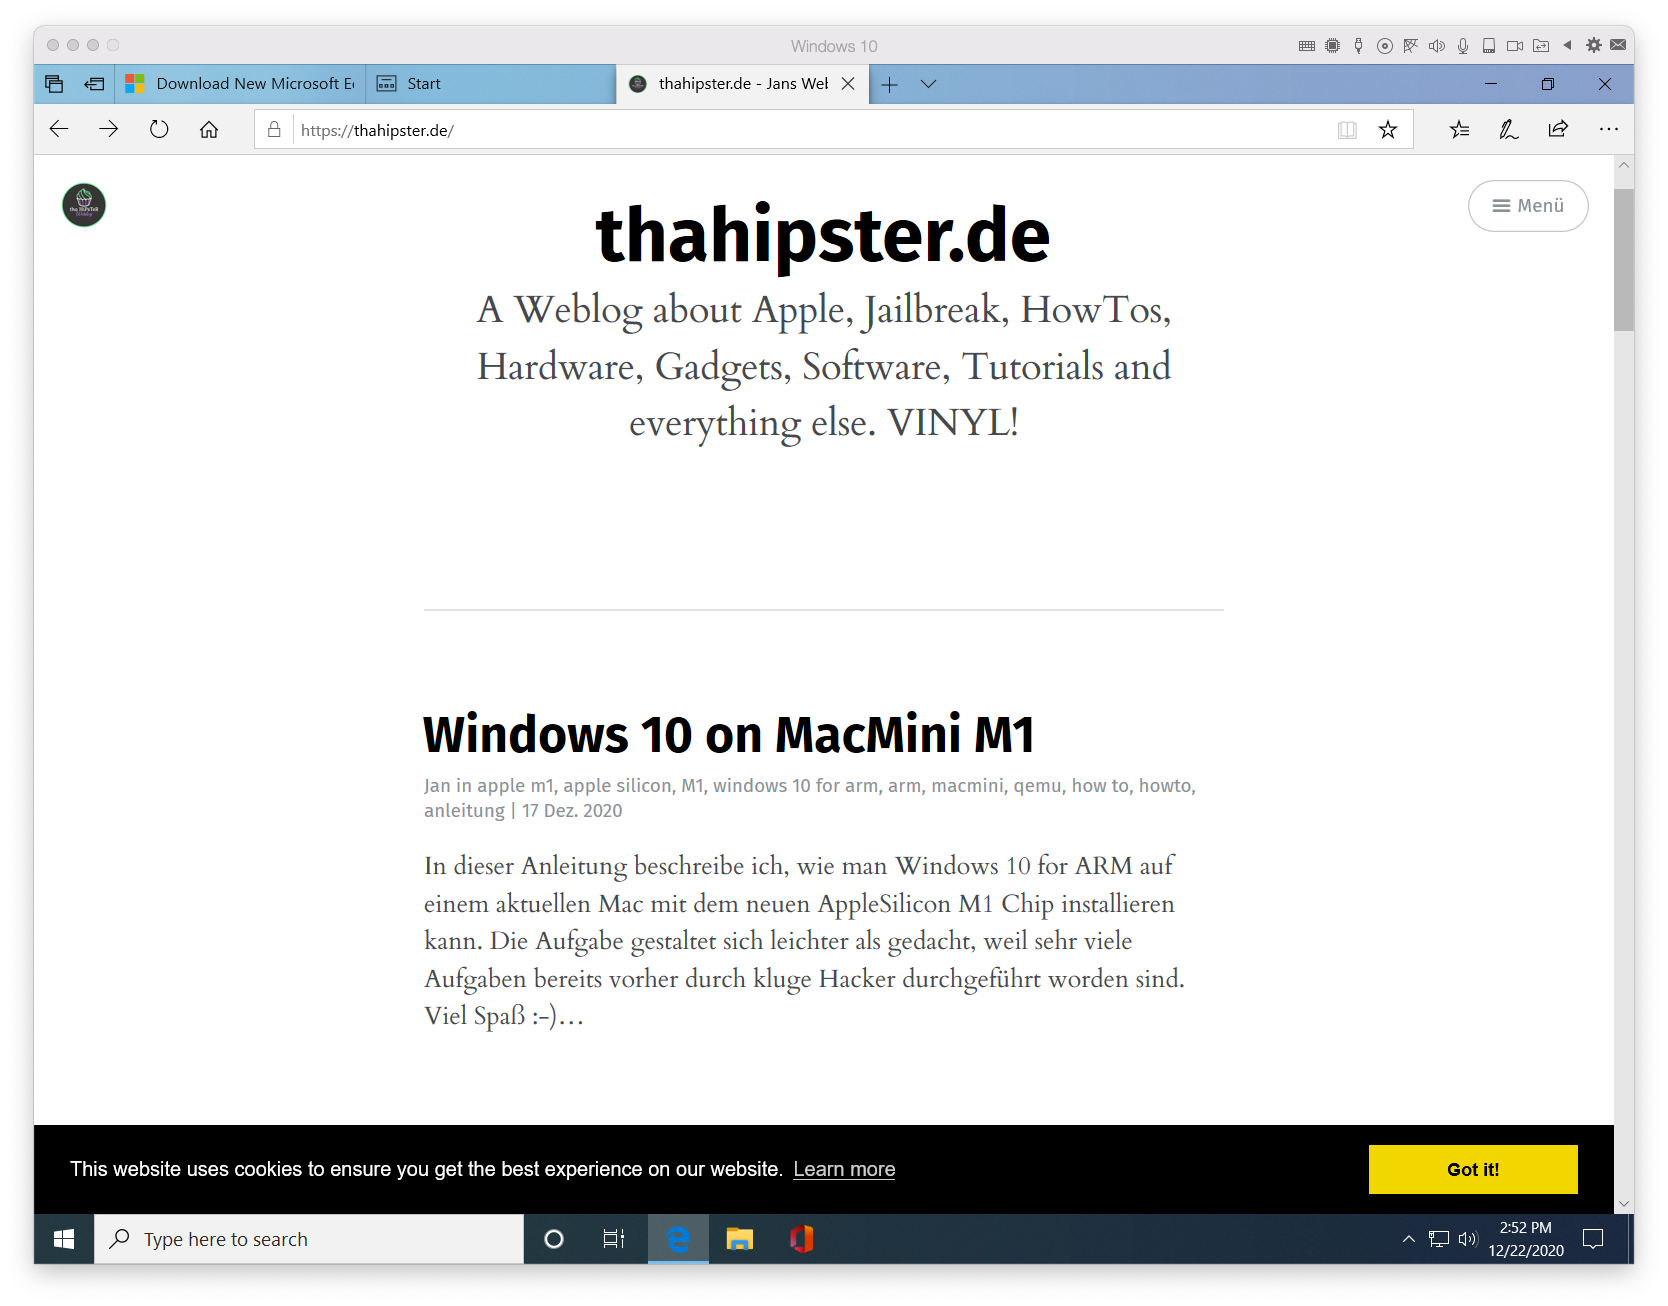 thahipster.de in Parallels M1 unter Windows 10 for Arm auf Mac M1